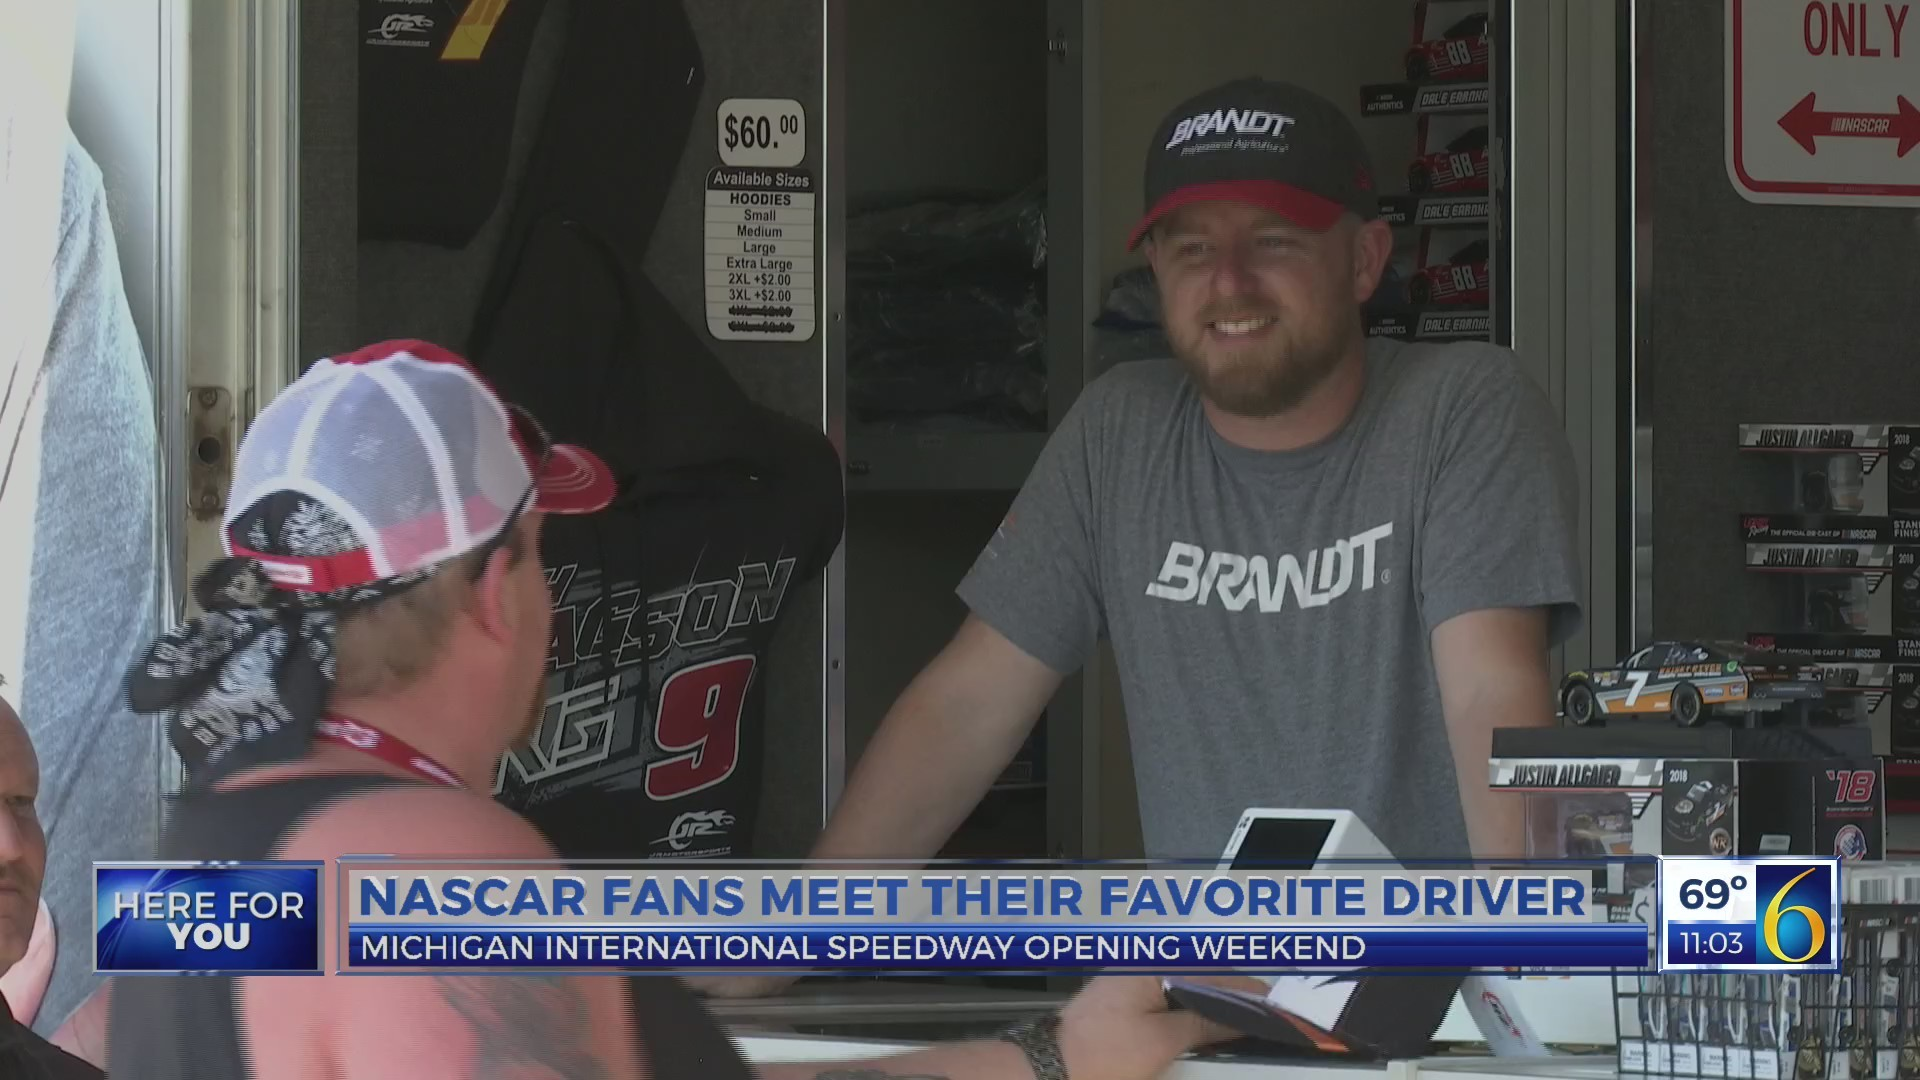 NASCAR fans get to meet star driver